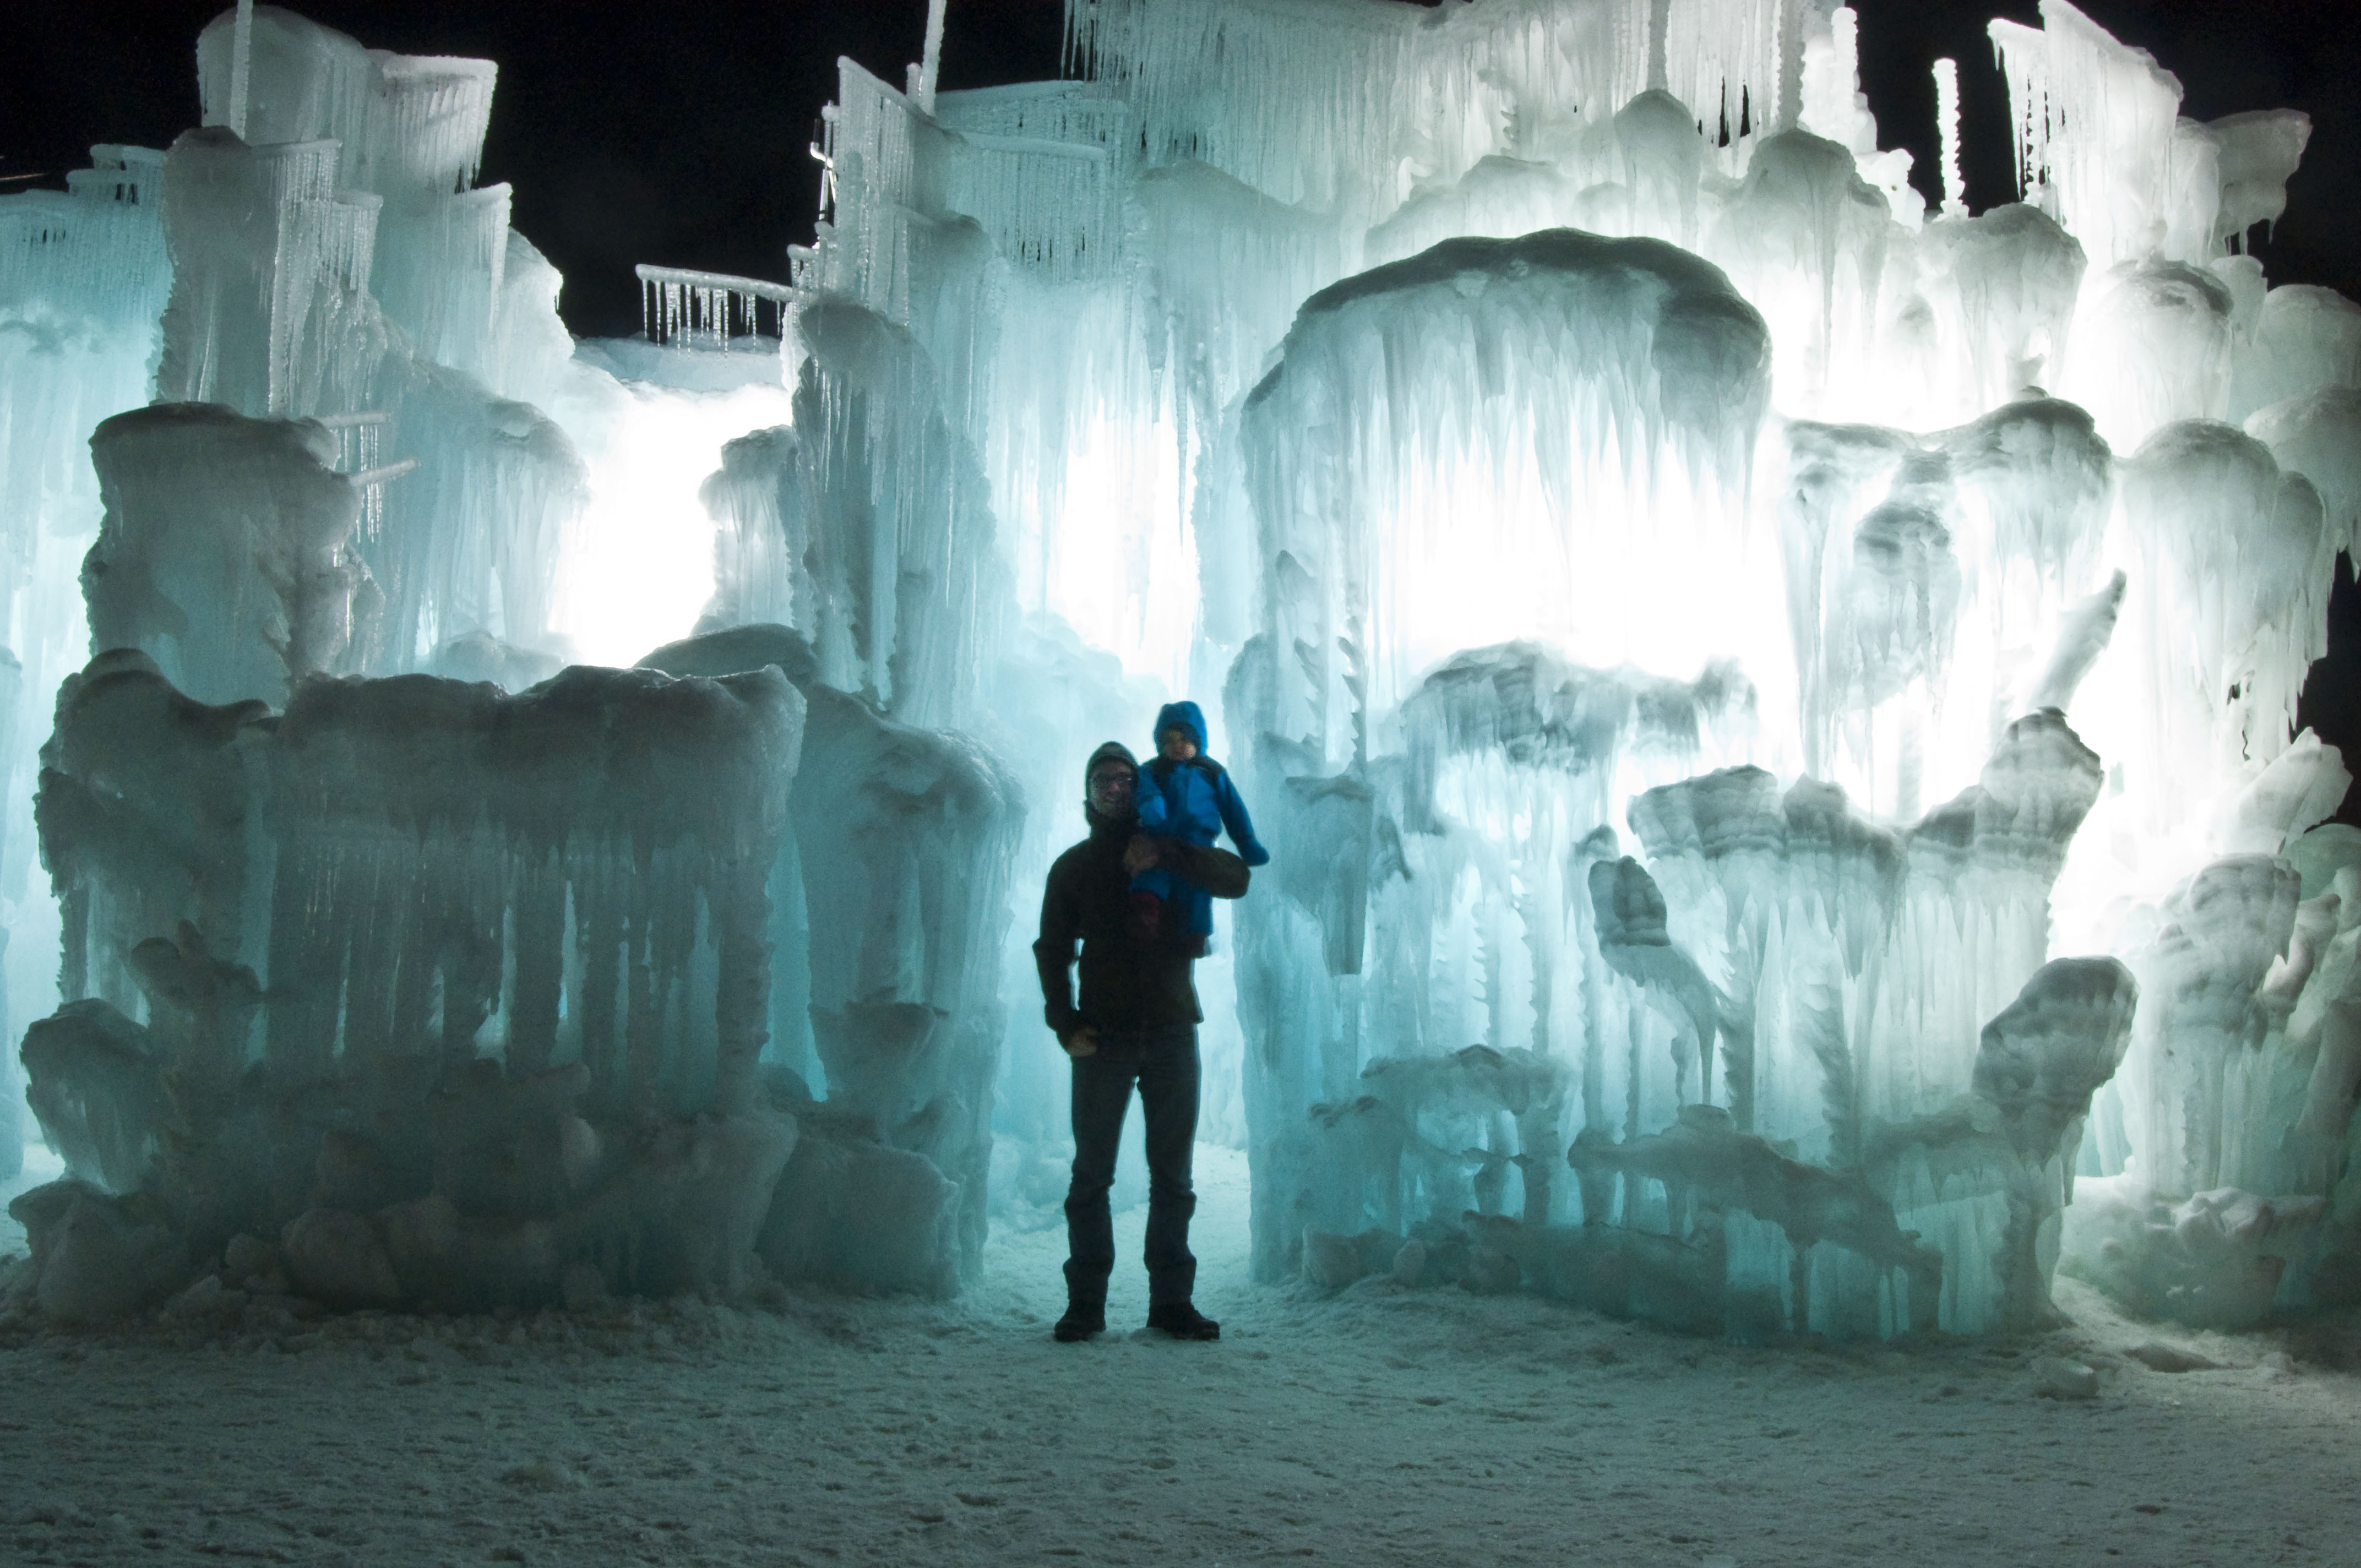 one of this week's highlights - ice castle visit with friends and family